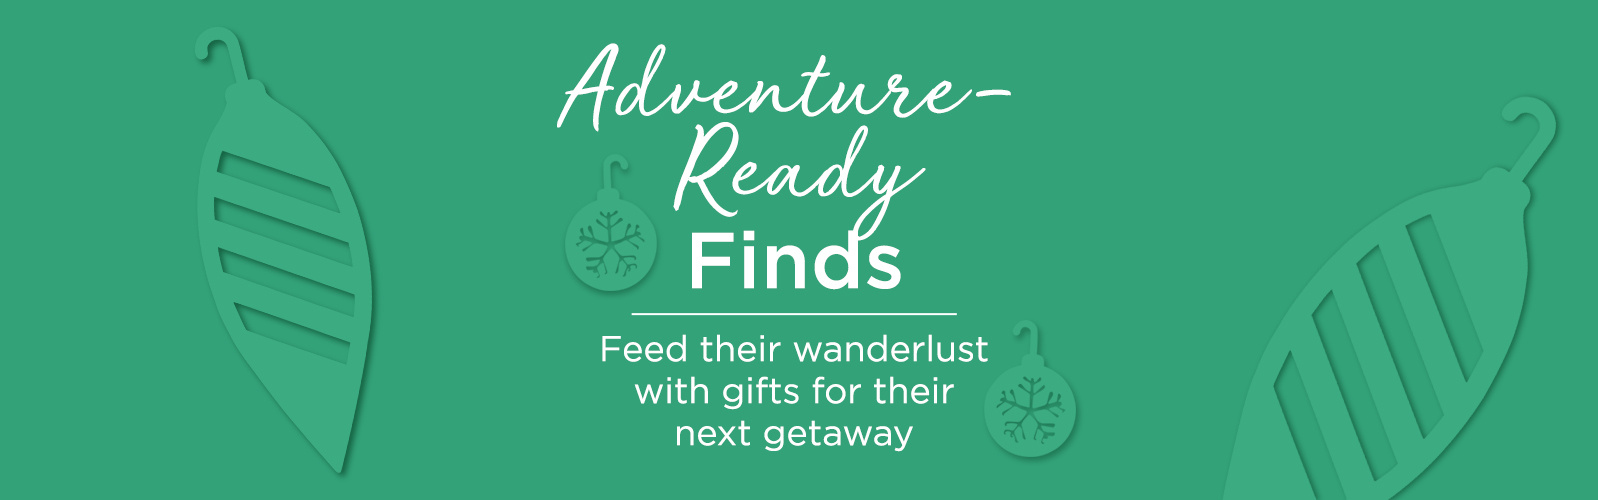 Adventure-Ready Finds.  Feed their wanderlust with gifts for their next getaway.